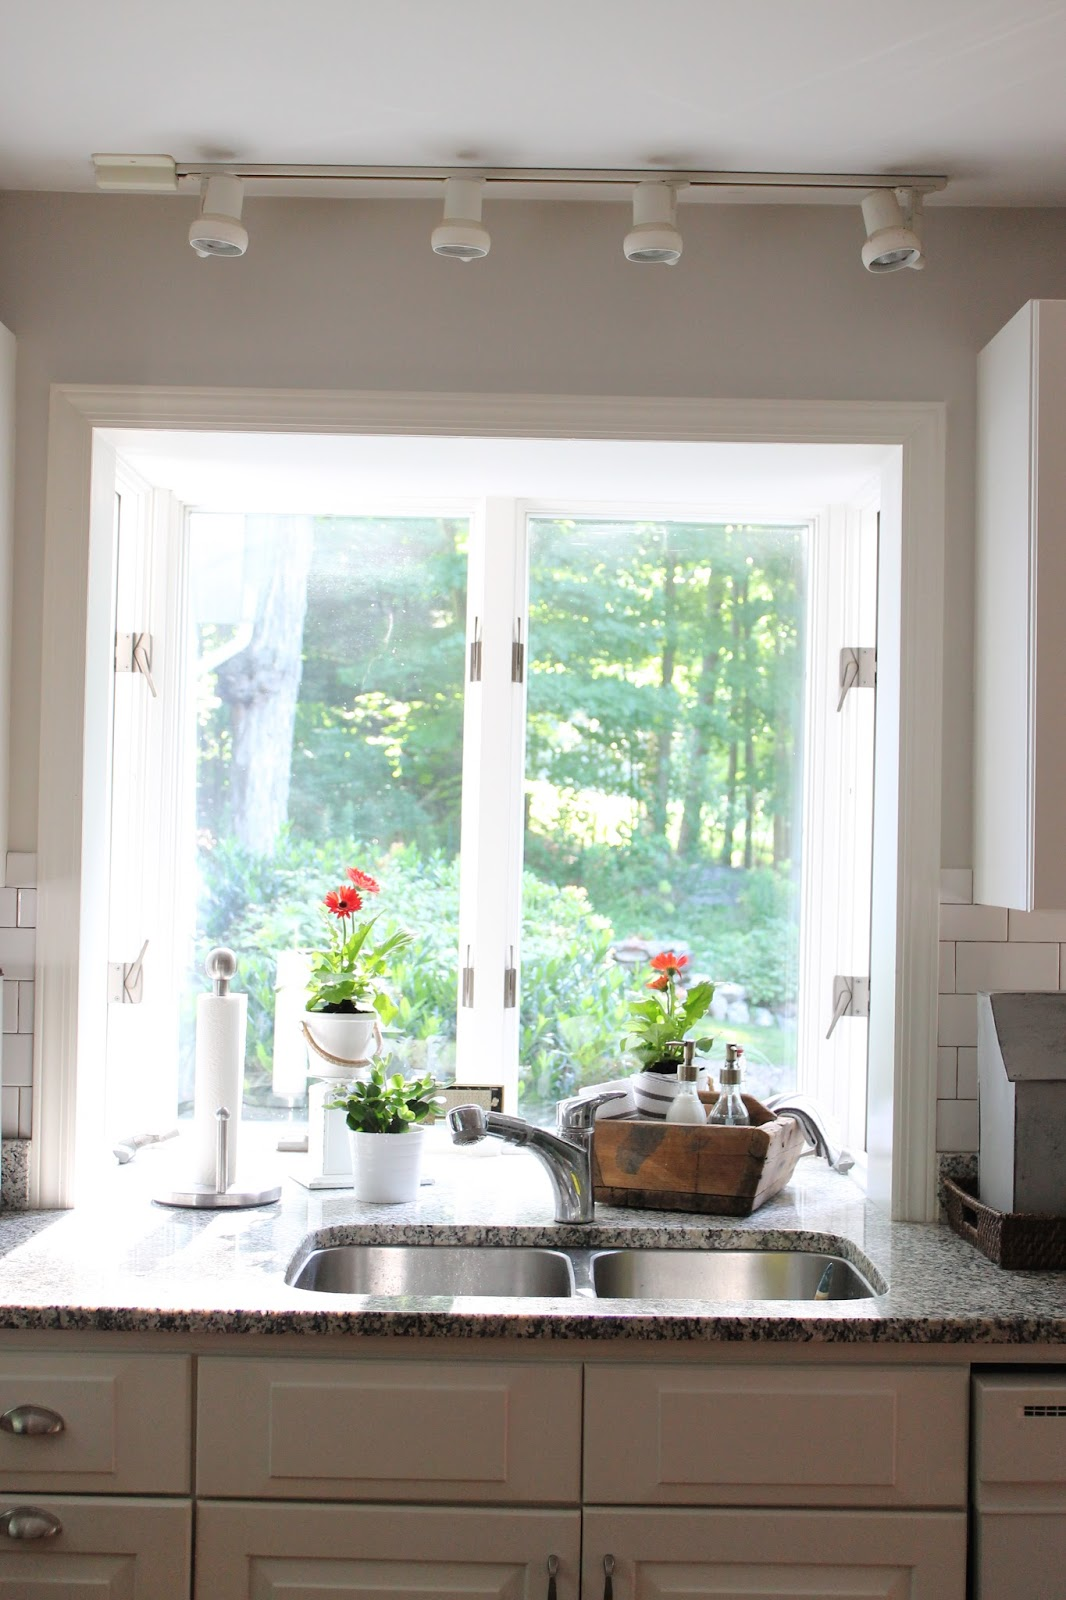 Over The Kitchen Sink Lighting Cabinet Displays For Sale Picket Fence Projects Pretty Pb Pendants